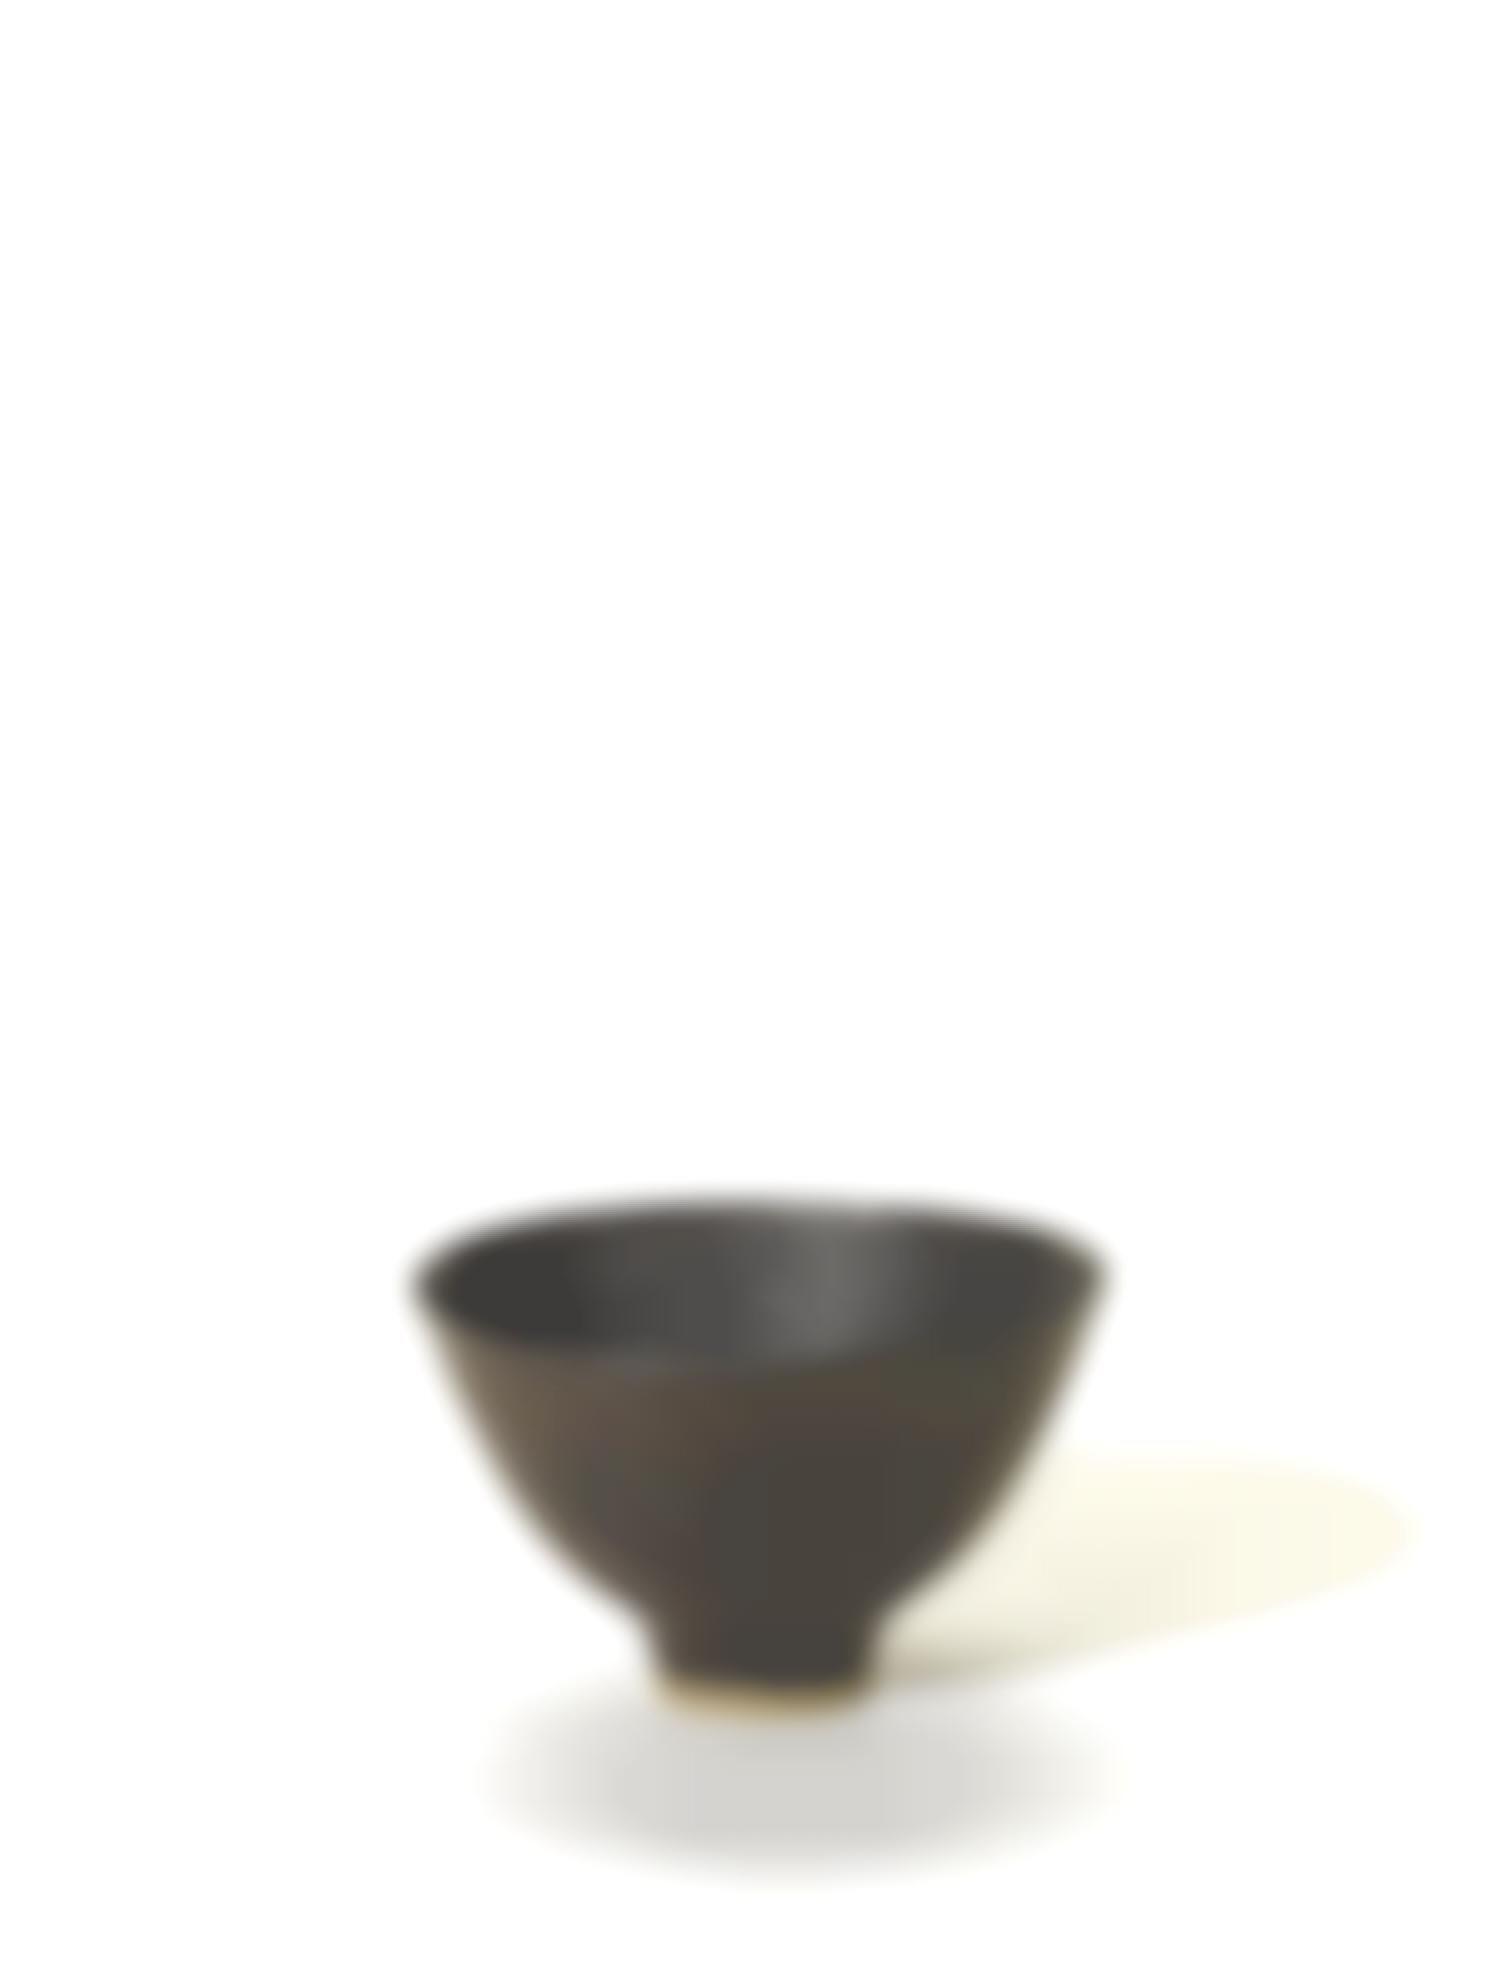 Dame Lucie Rie - Small Bowl-1960